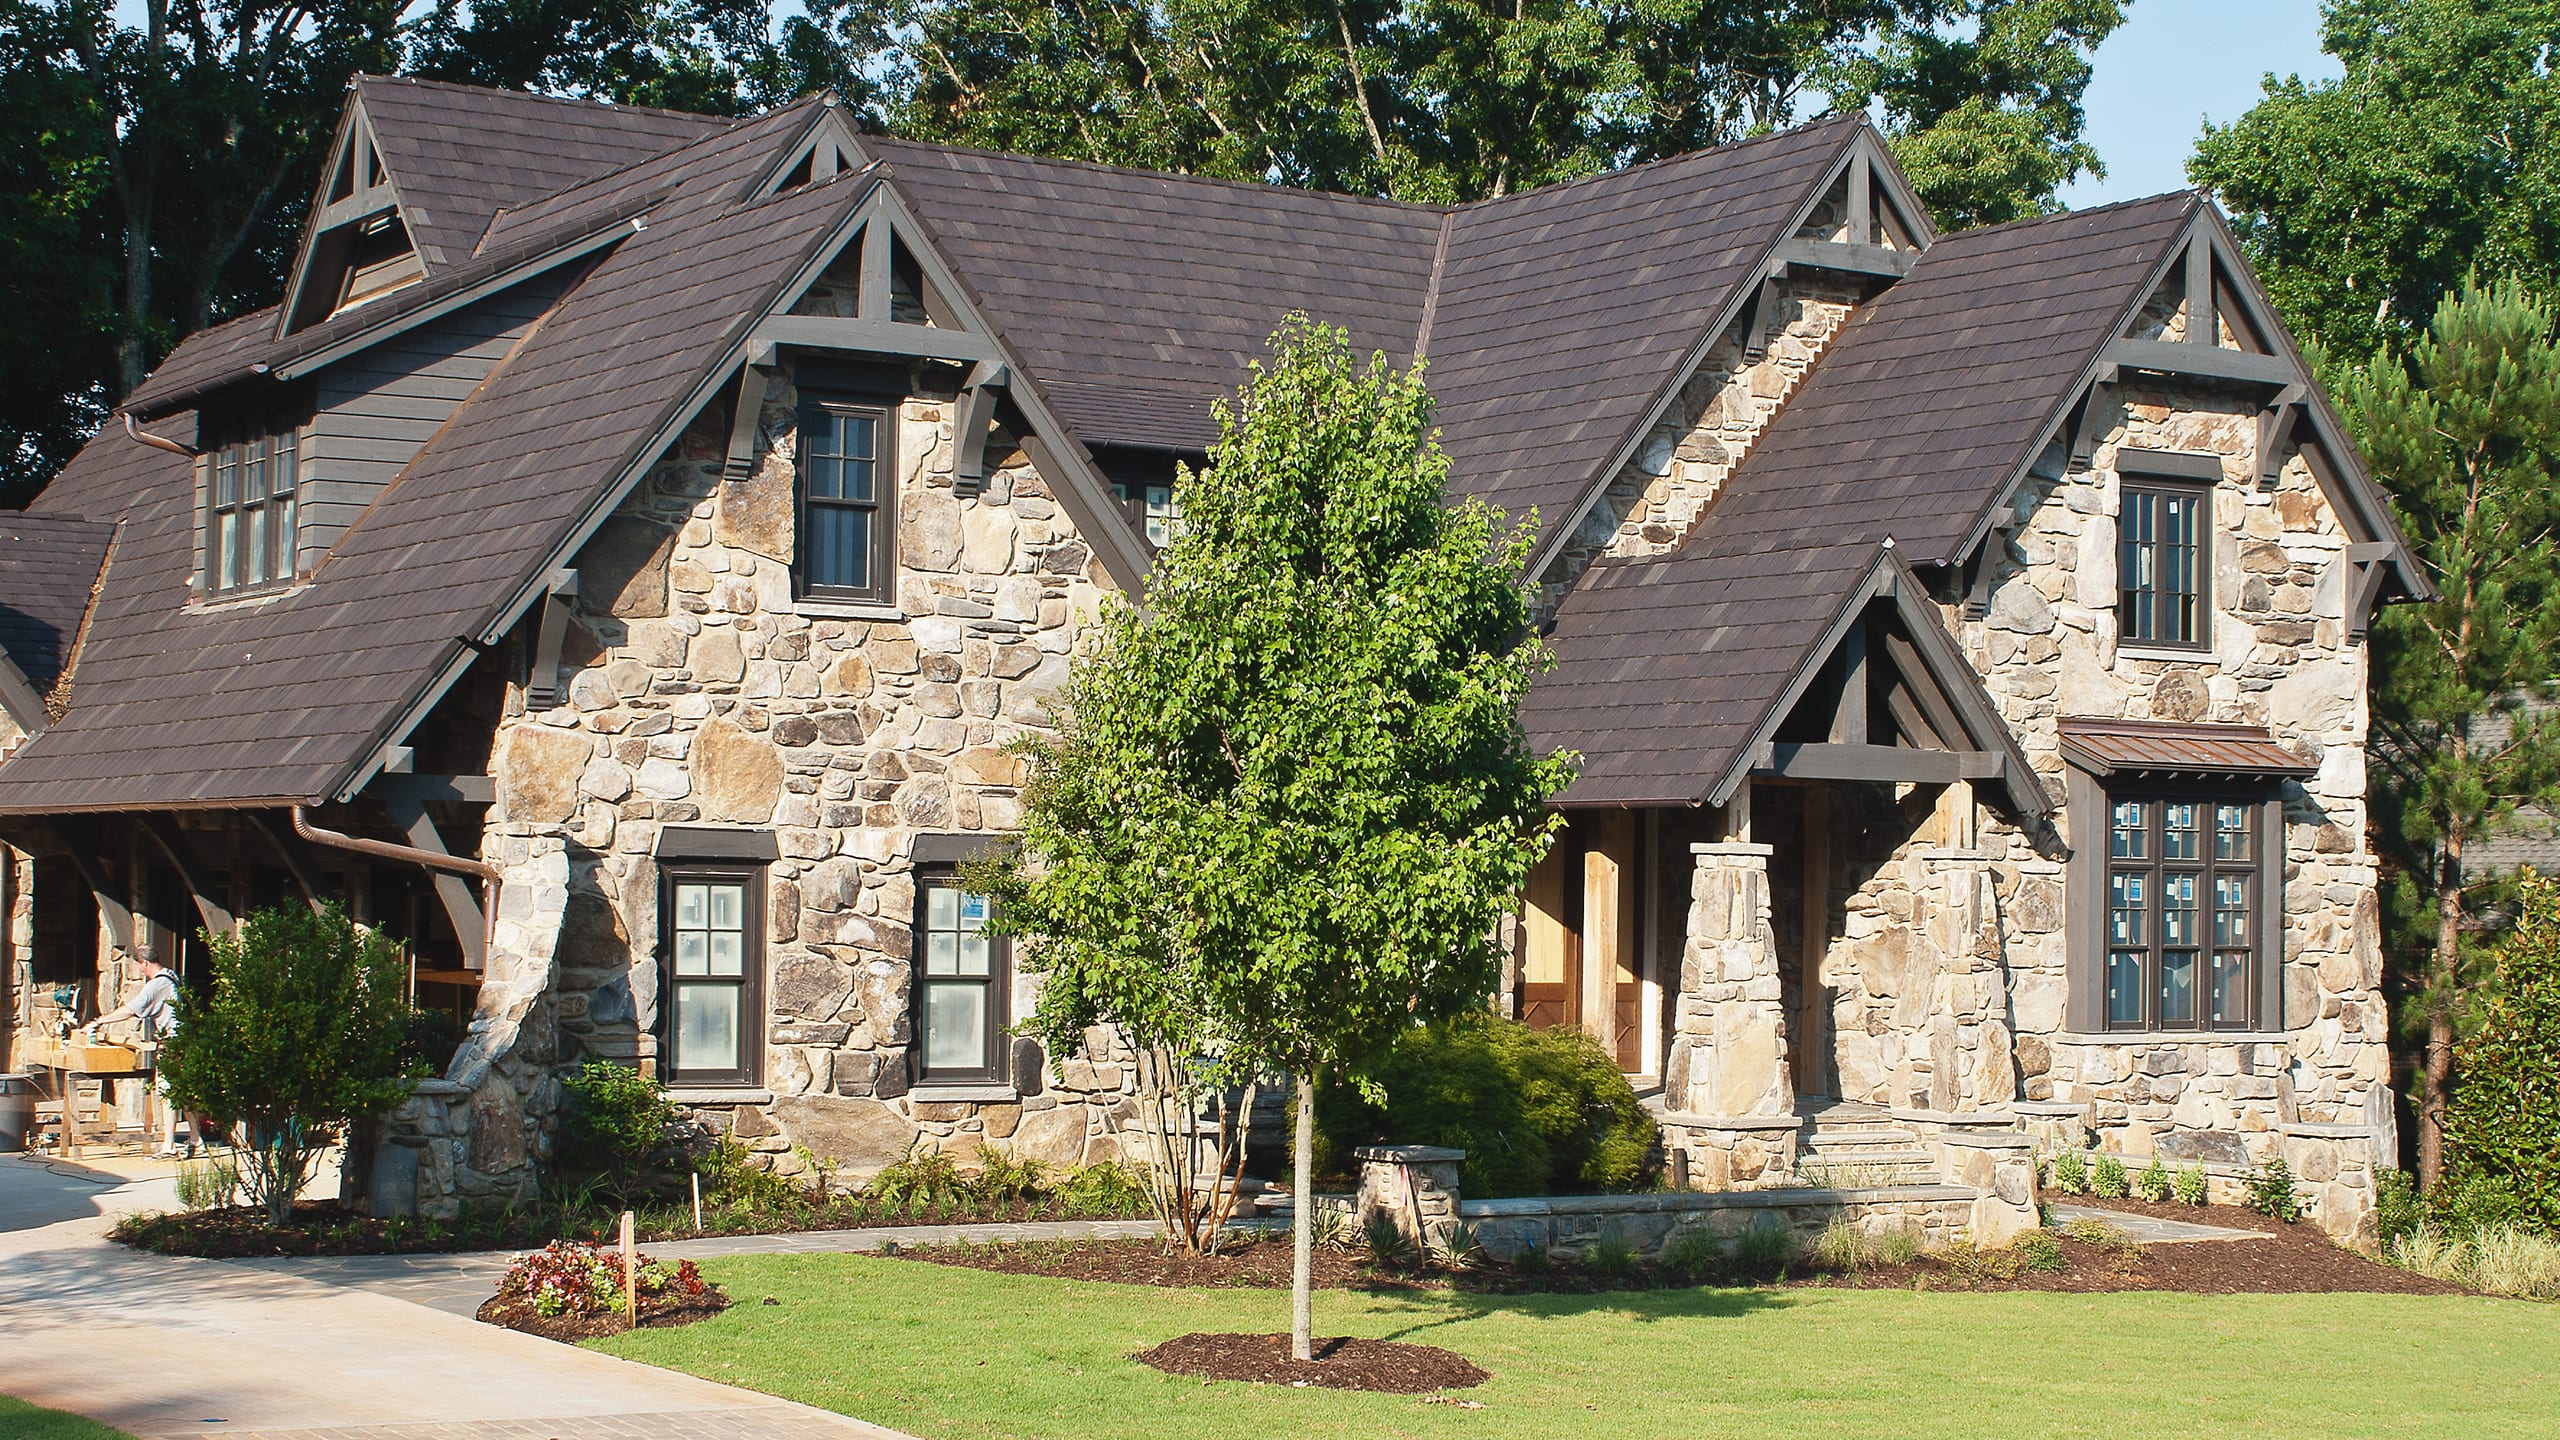 Private Residence - Suwanee Ludowici Roof Tile